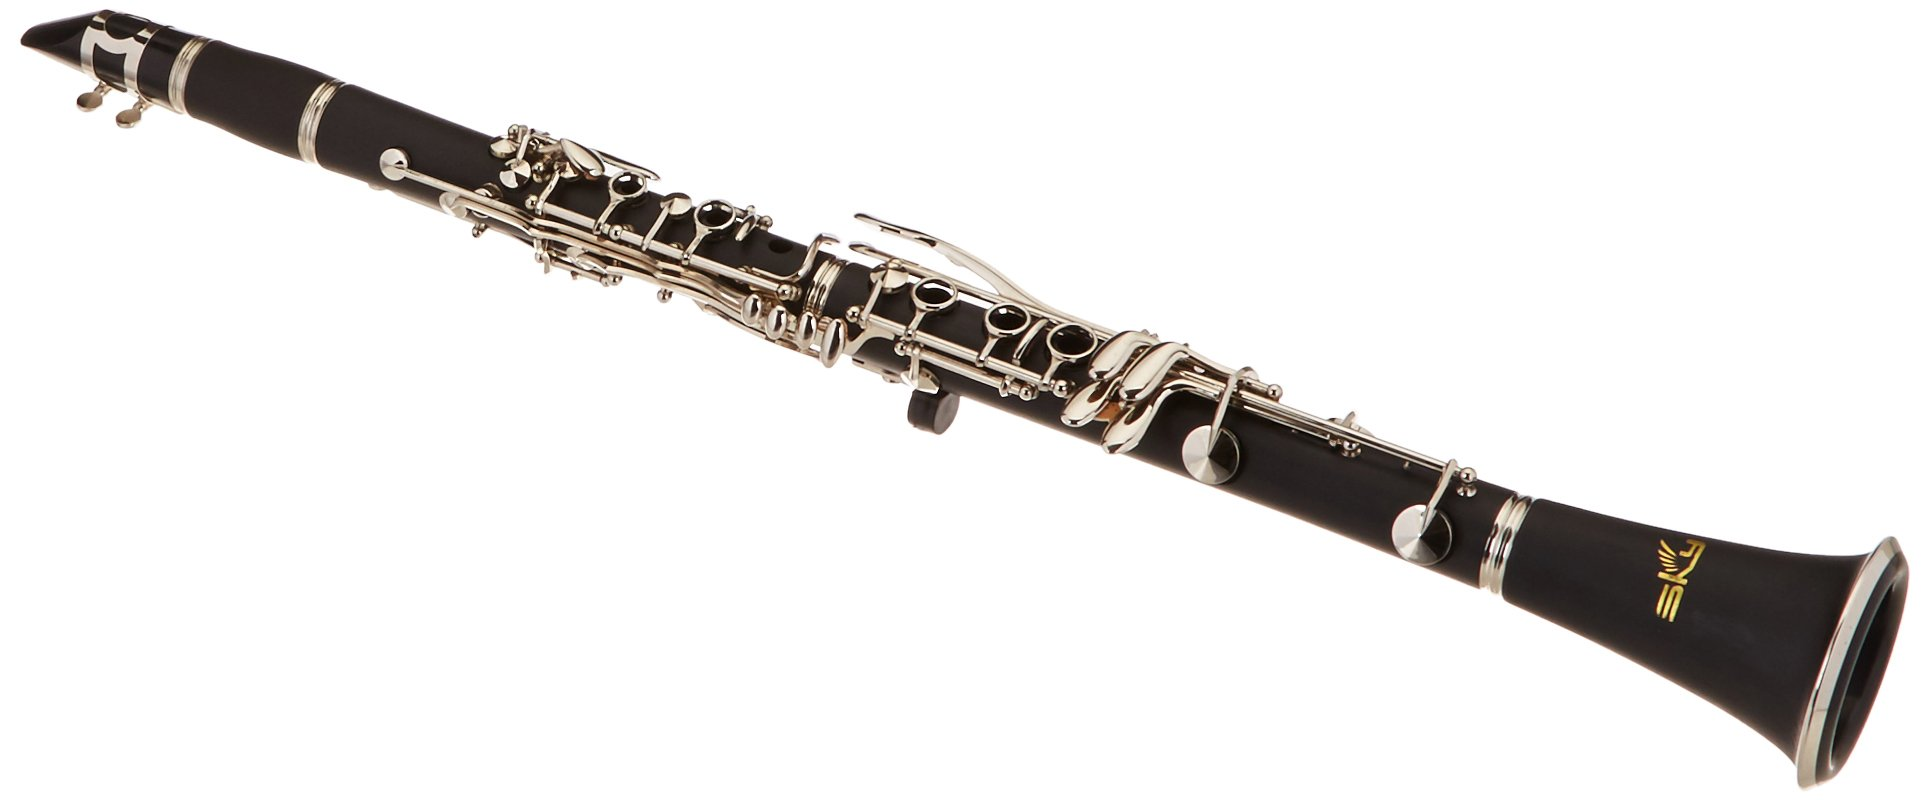 Sky Band Approved SKY-CLEBI-001 Black Ebonite B-flat Clarinet with Case, Mouthpiece, 10 Reeds, Cork Grease and Cleaning Cloth SOUND GUARANTEED